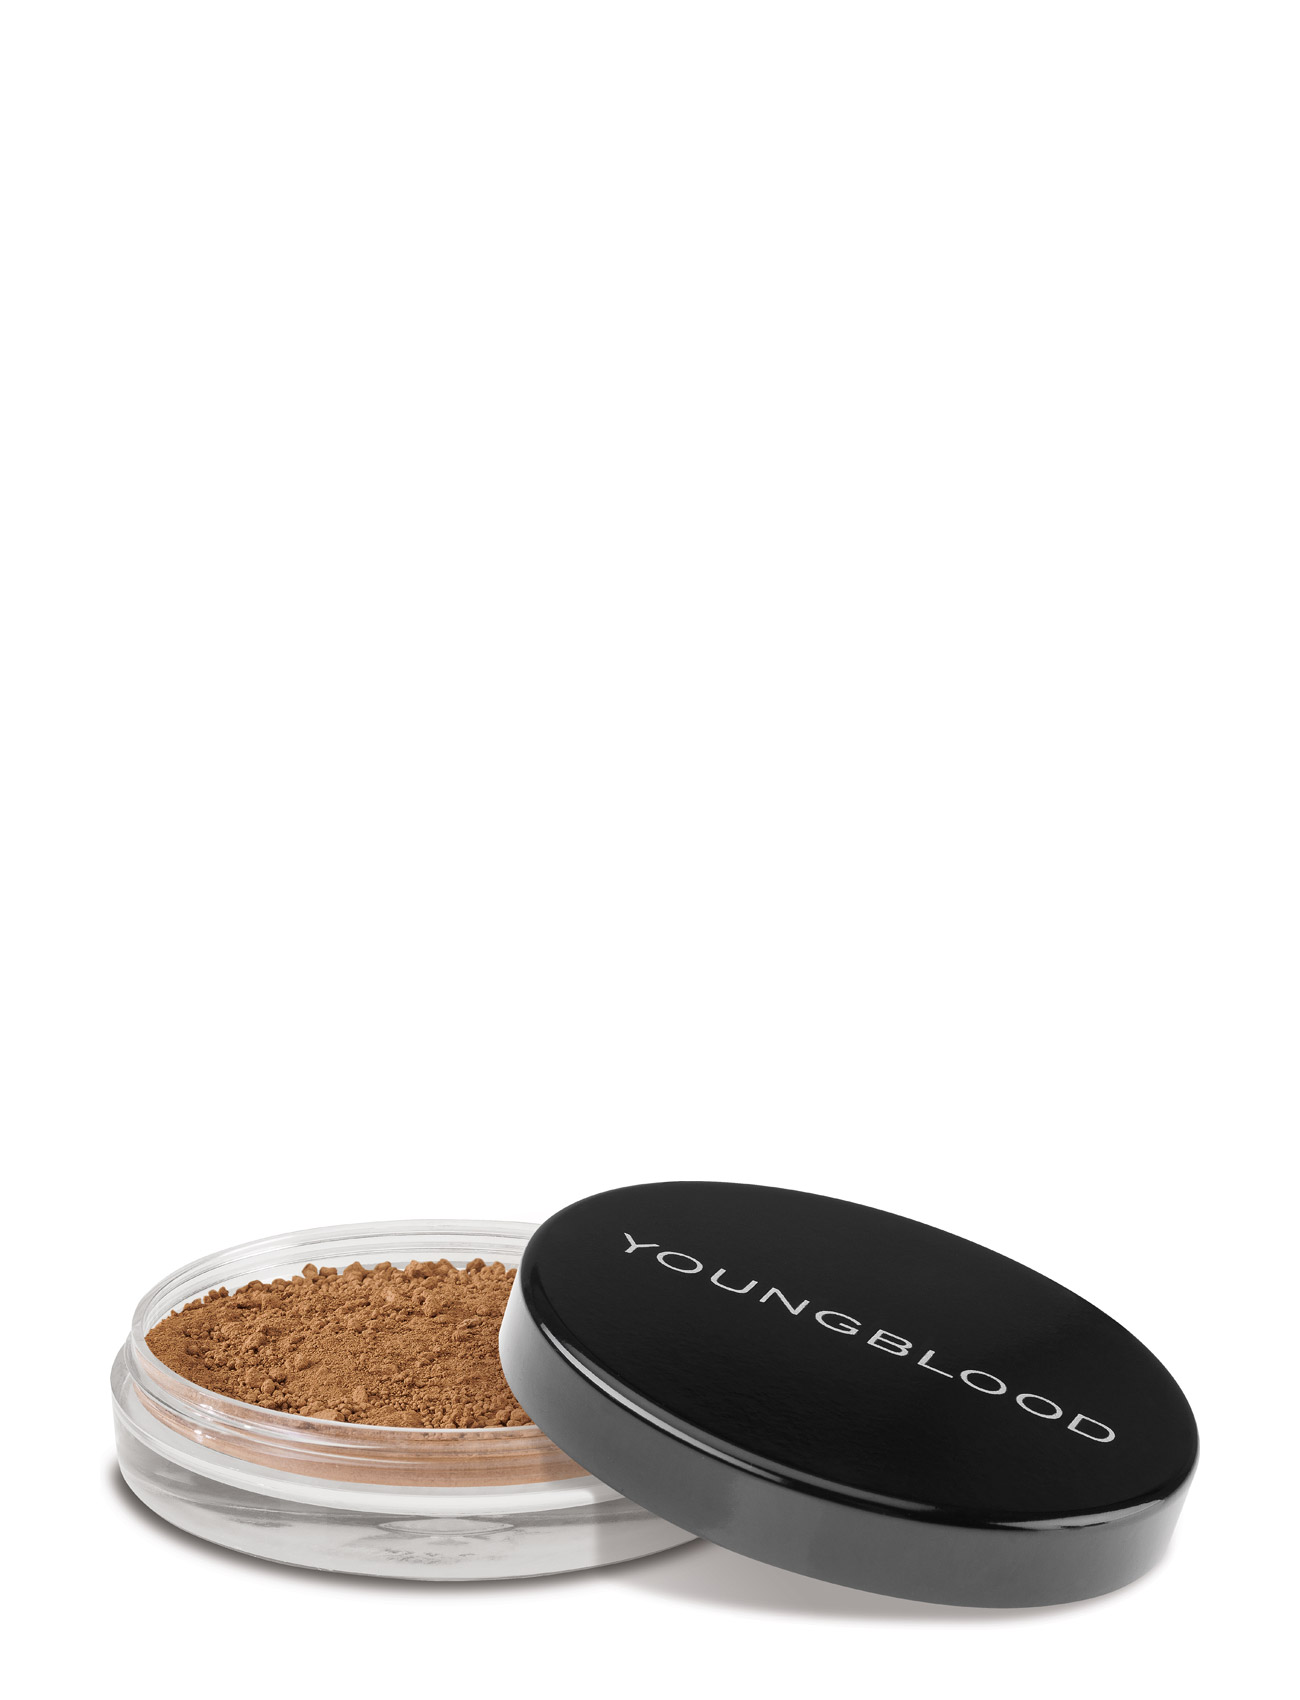 youngblood Youngblood loose mineral foundation på boozt.com dk